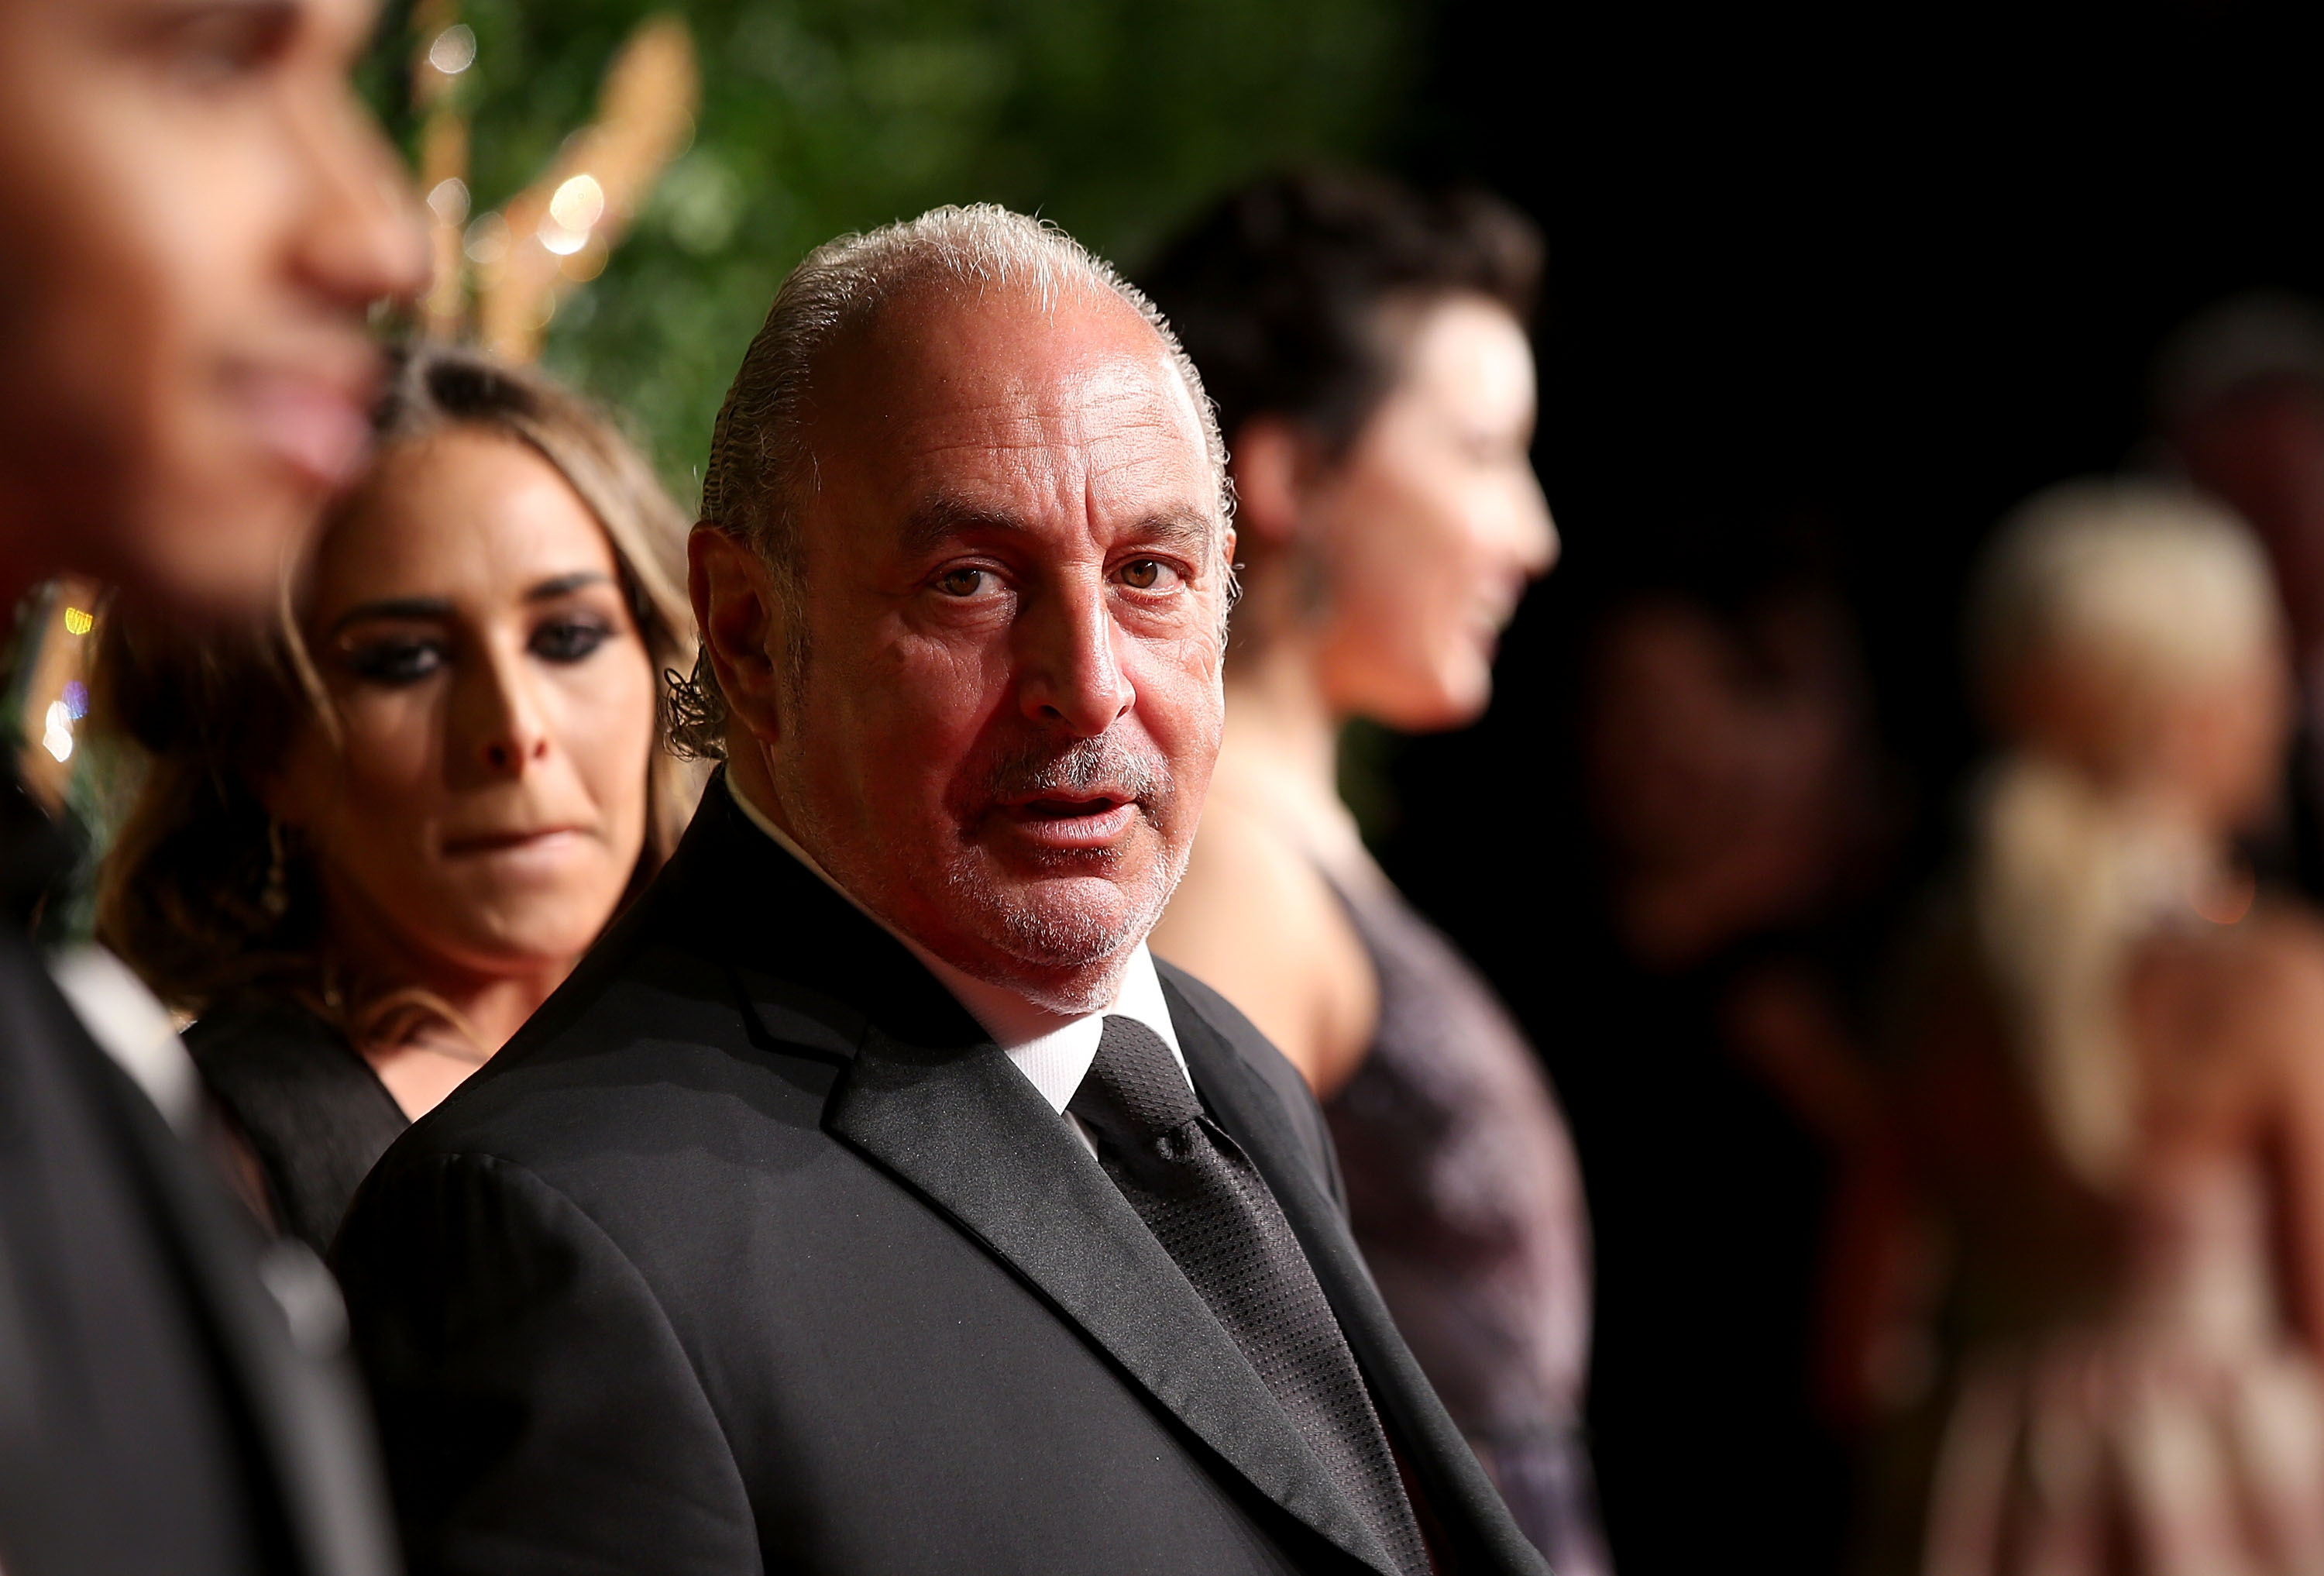 Sir Philip Green is unlikely to buy Arcadia business from directors